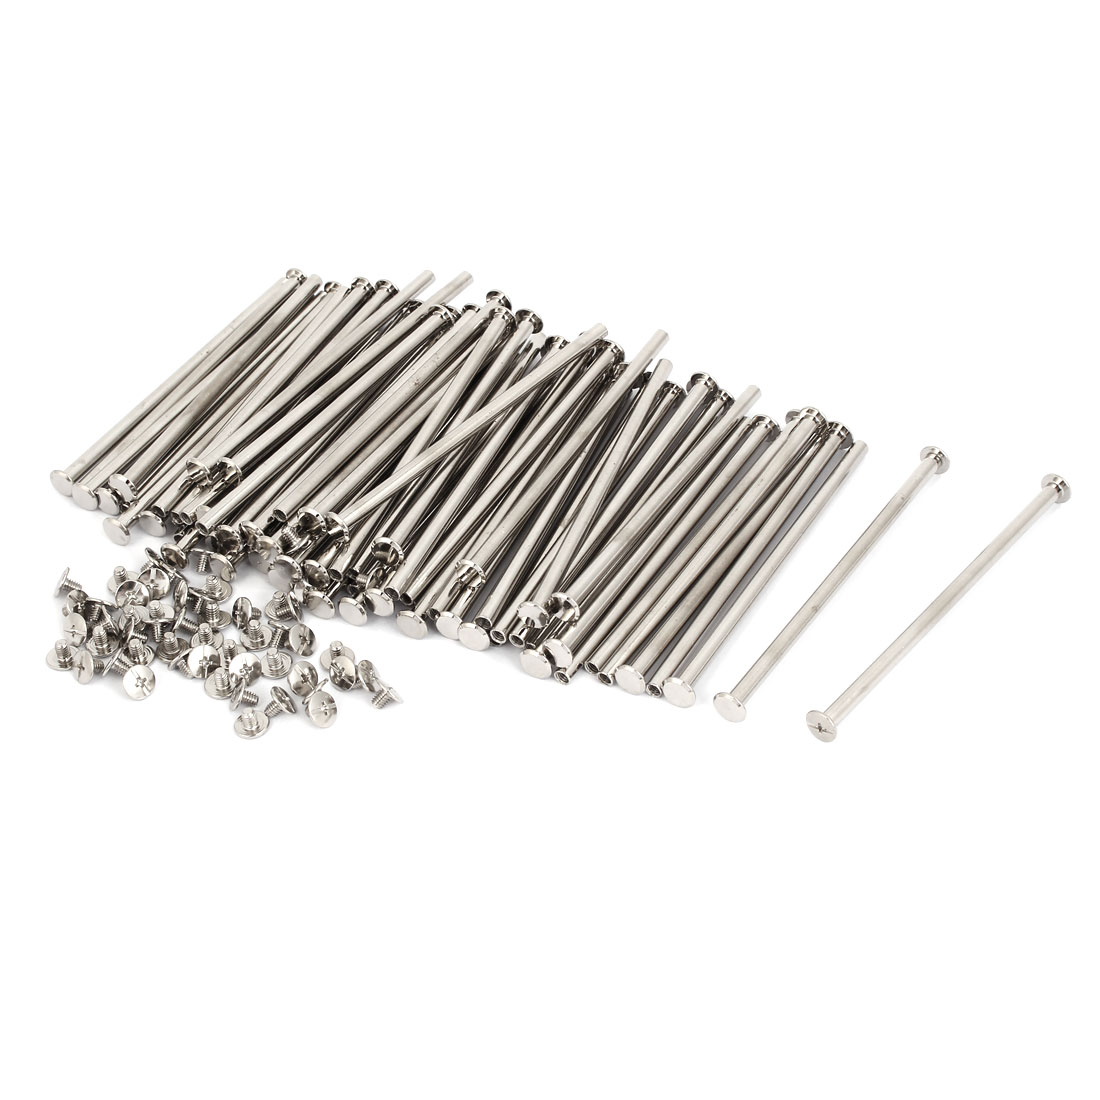 M5x110mm Leather Craft Belt Metal Nail Rivets Chicago Screws Binding Post 100pcs